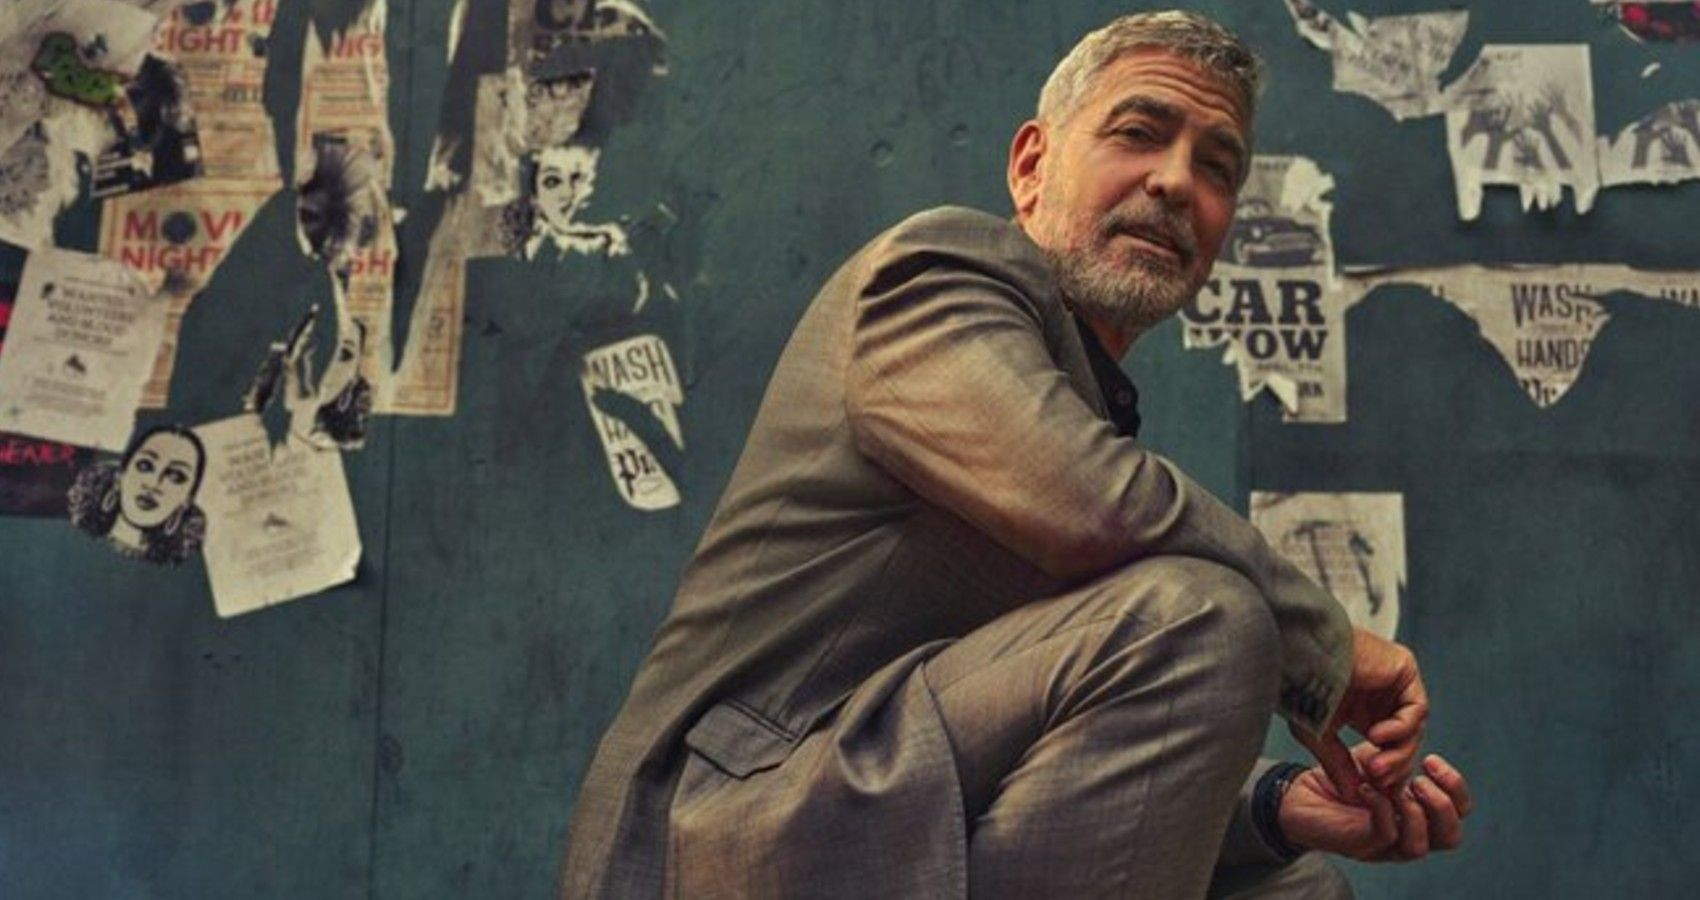 George Clooney Reflects On Fatherhood After Motorcycle Accident